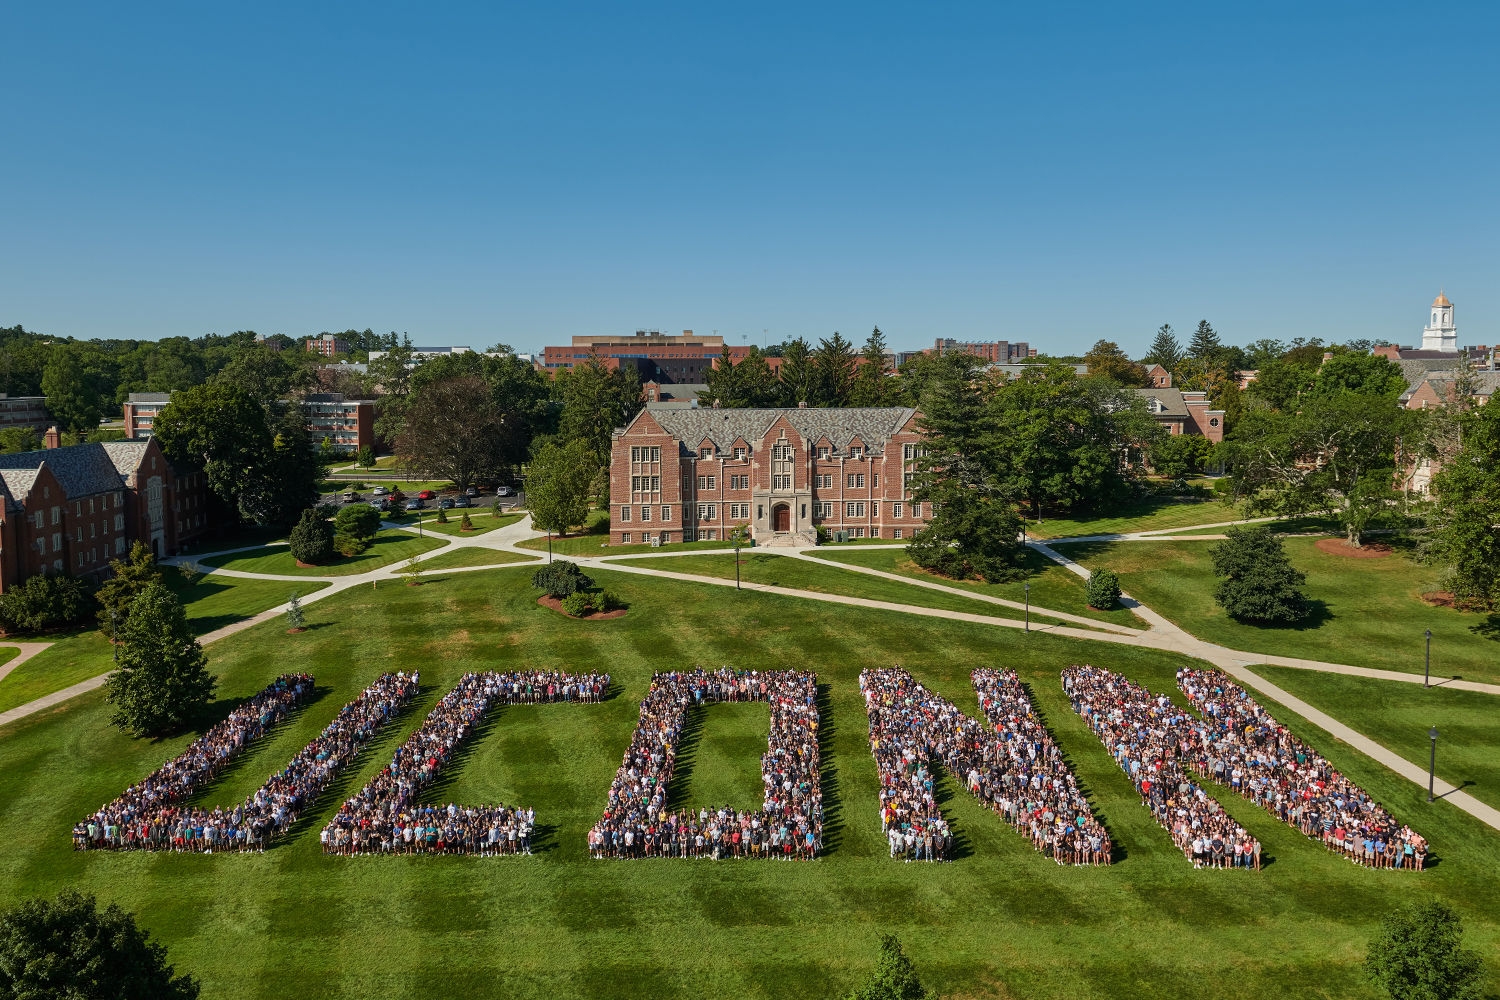 The Class of 2023 poses for a photo on the Great Lawn on Aug. 24, 2019. (Peter Morenus/UConn Photo)